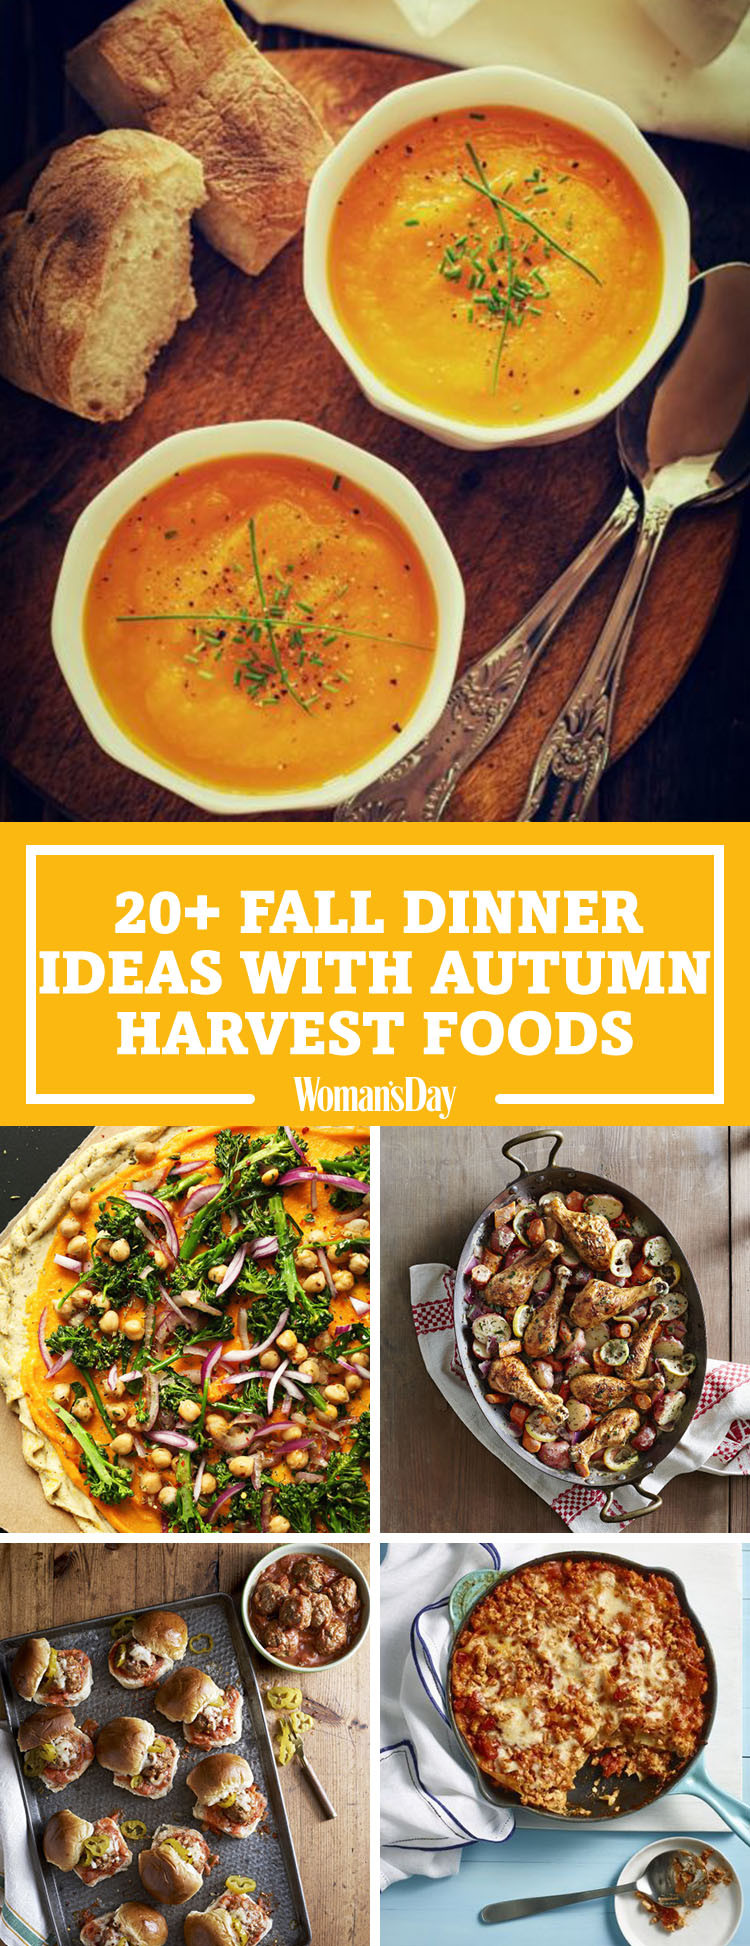 Best Fall Dinners  26 Easy Fall Dinner Ideas Best Dinner Recipes for Autumn